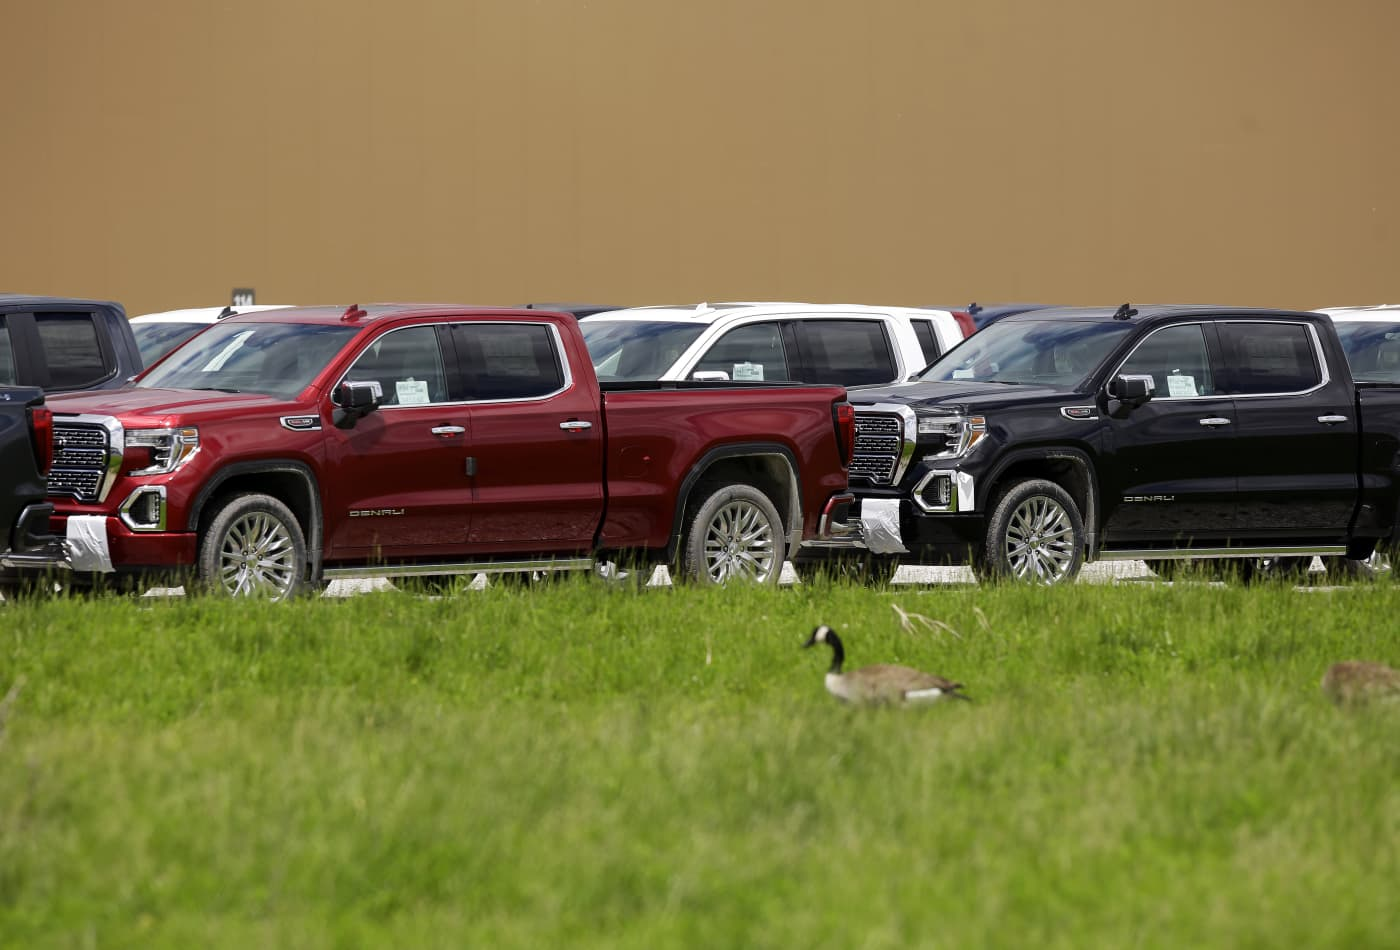 Buyers traveling across the country, paying record prices for used pickups